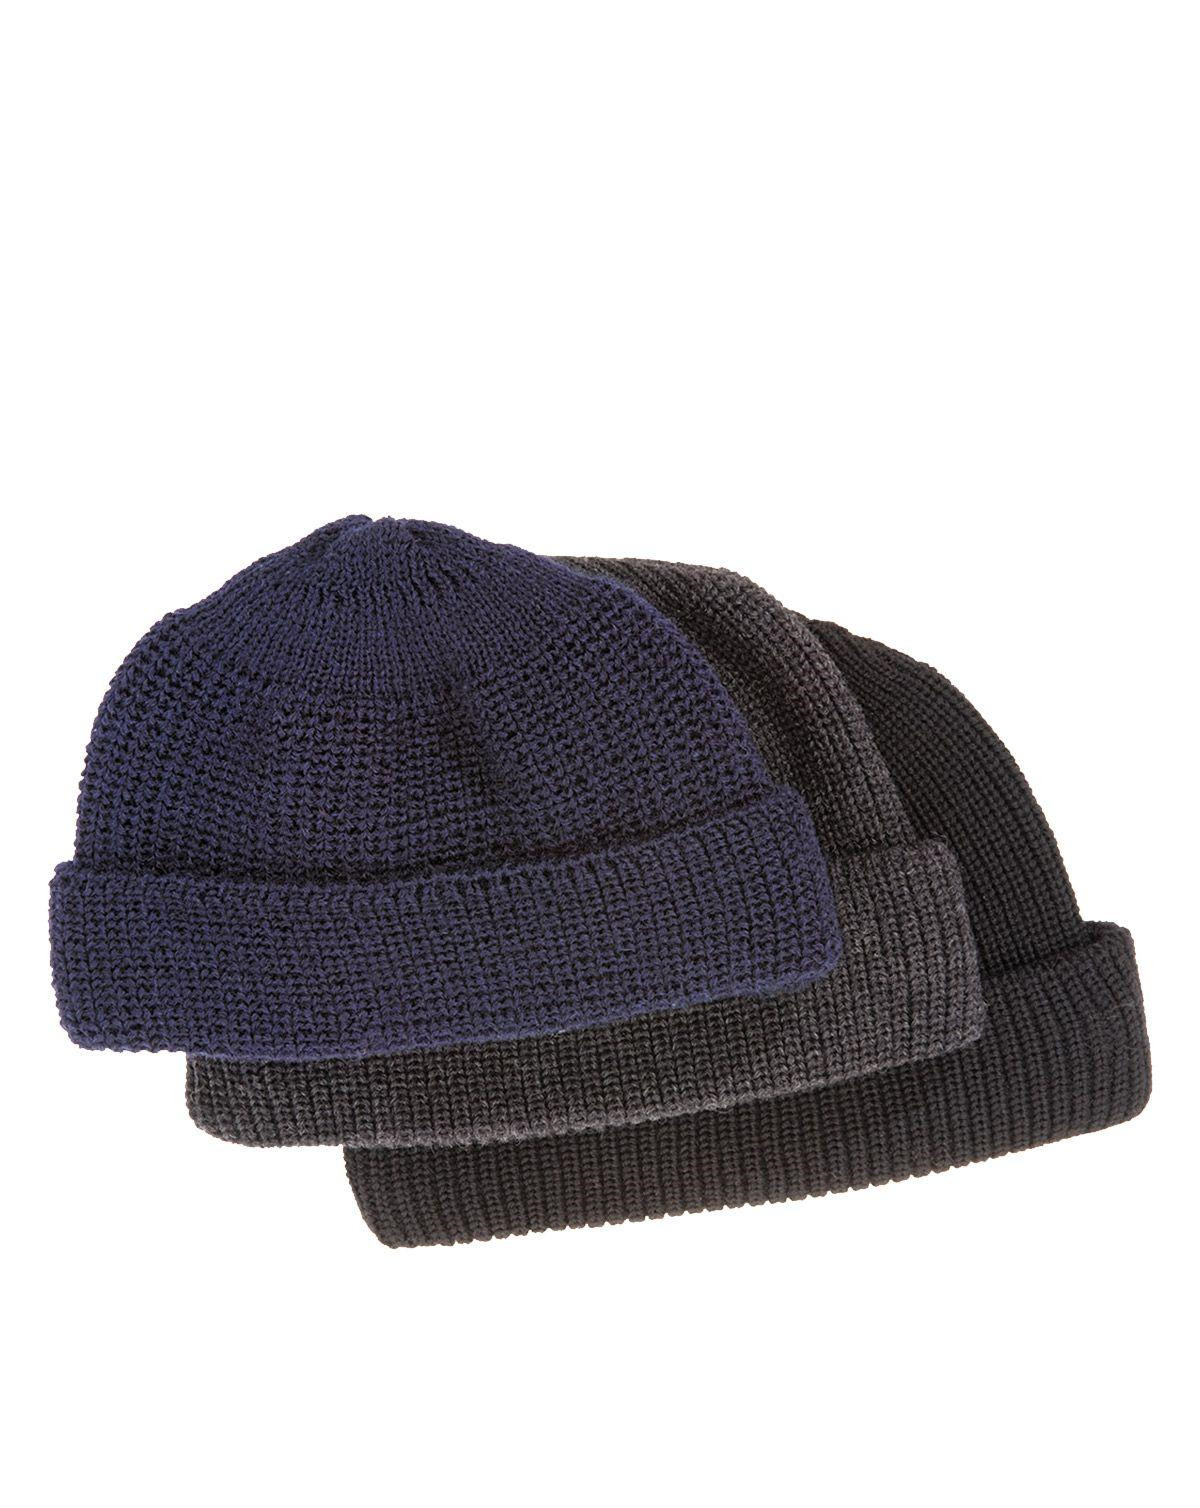 Image of   FHB Uld hat - Johann (Antracit, One Size)